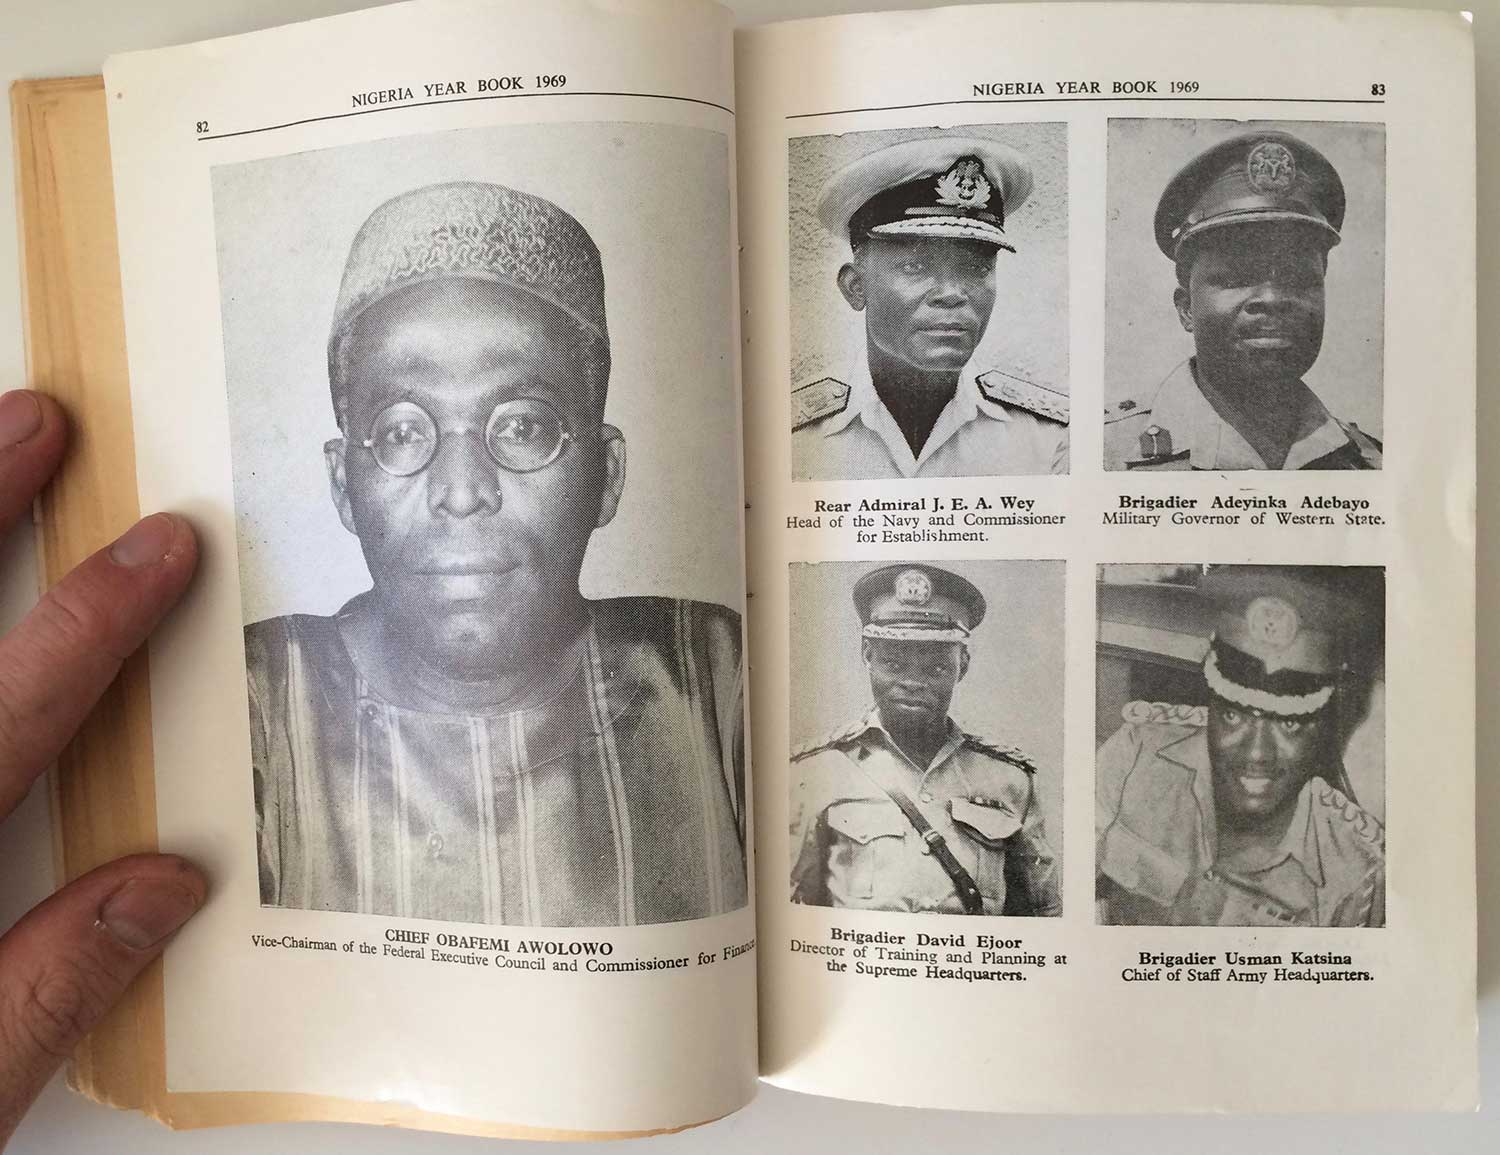 NigeriaYearbook69_inside06